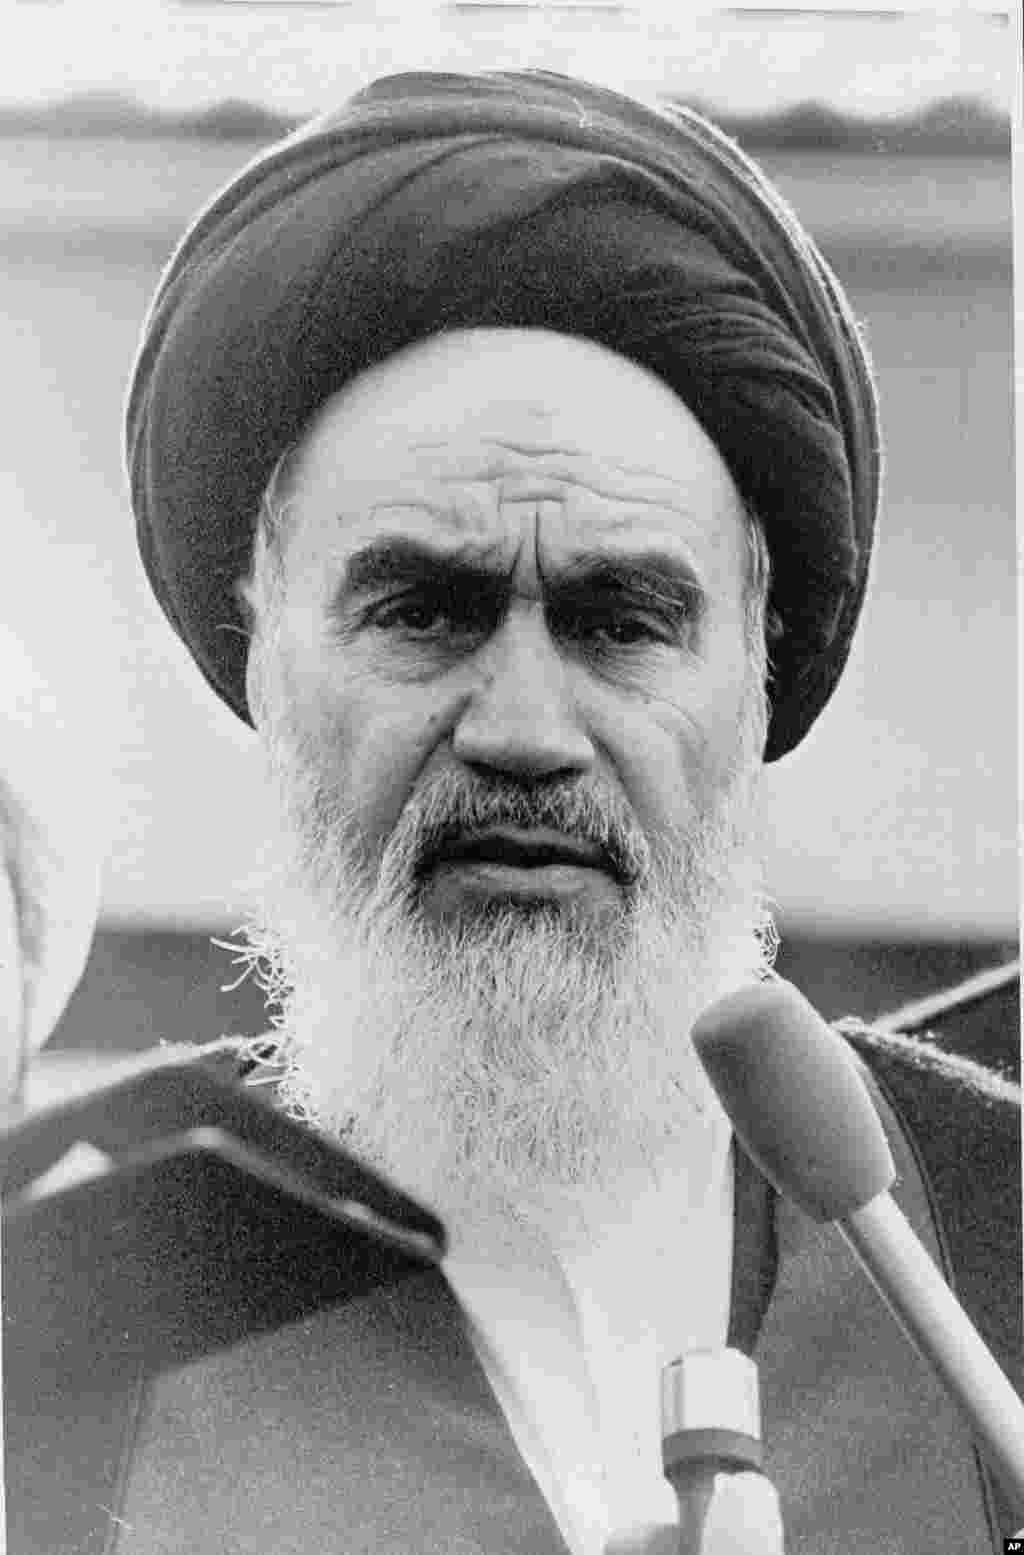 Ayatollah Ruhollah Khomeini, Iran's exiled religious leader, speaks on January 25, 1979, at a news conference following morning prayers in Paris. Through an interpreter, he told international journalists that he was postponing his return to Tehran because of the Iranian Army's closure of the airports.